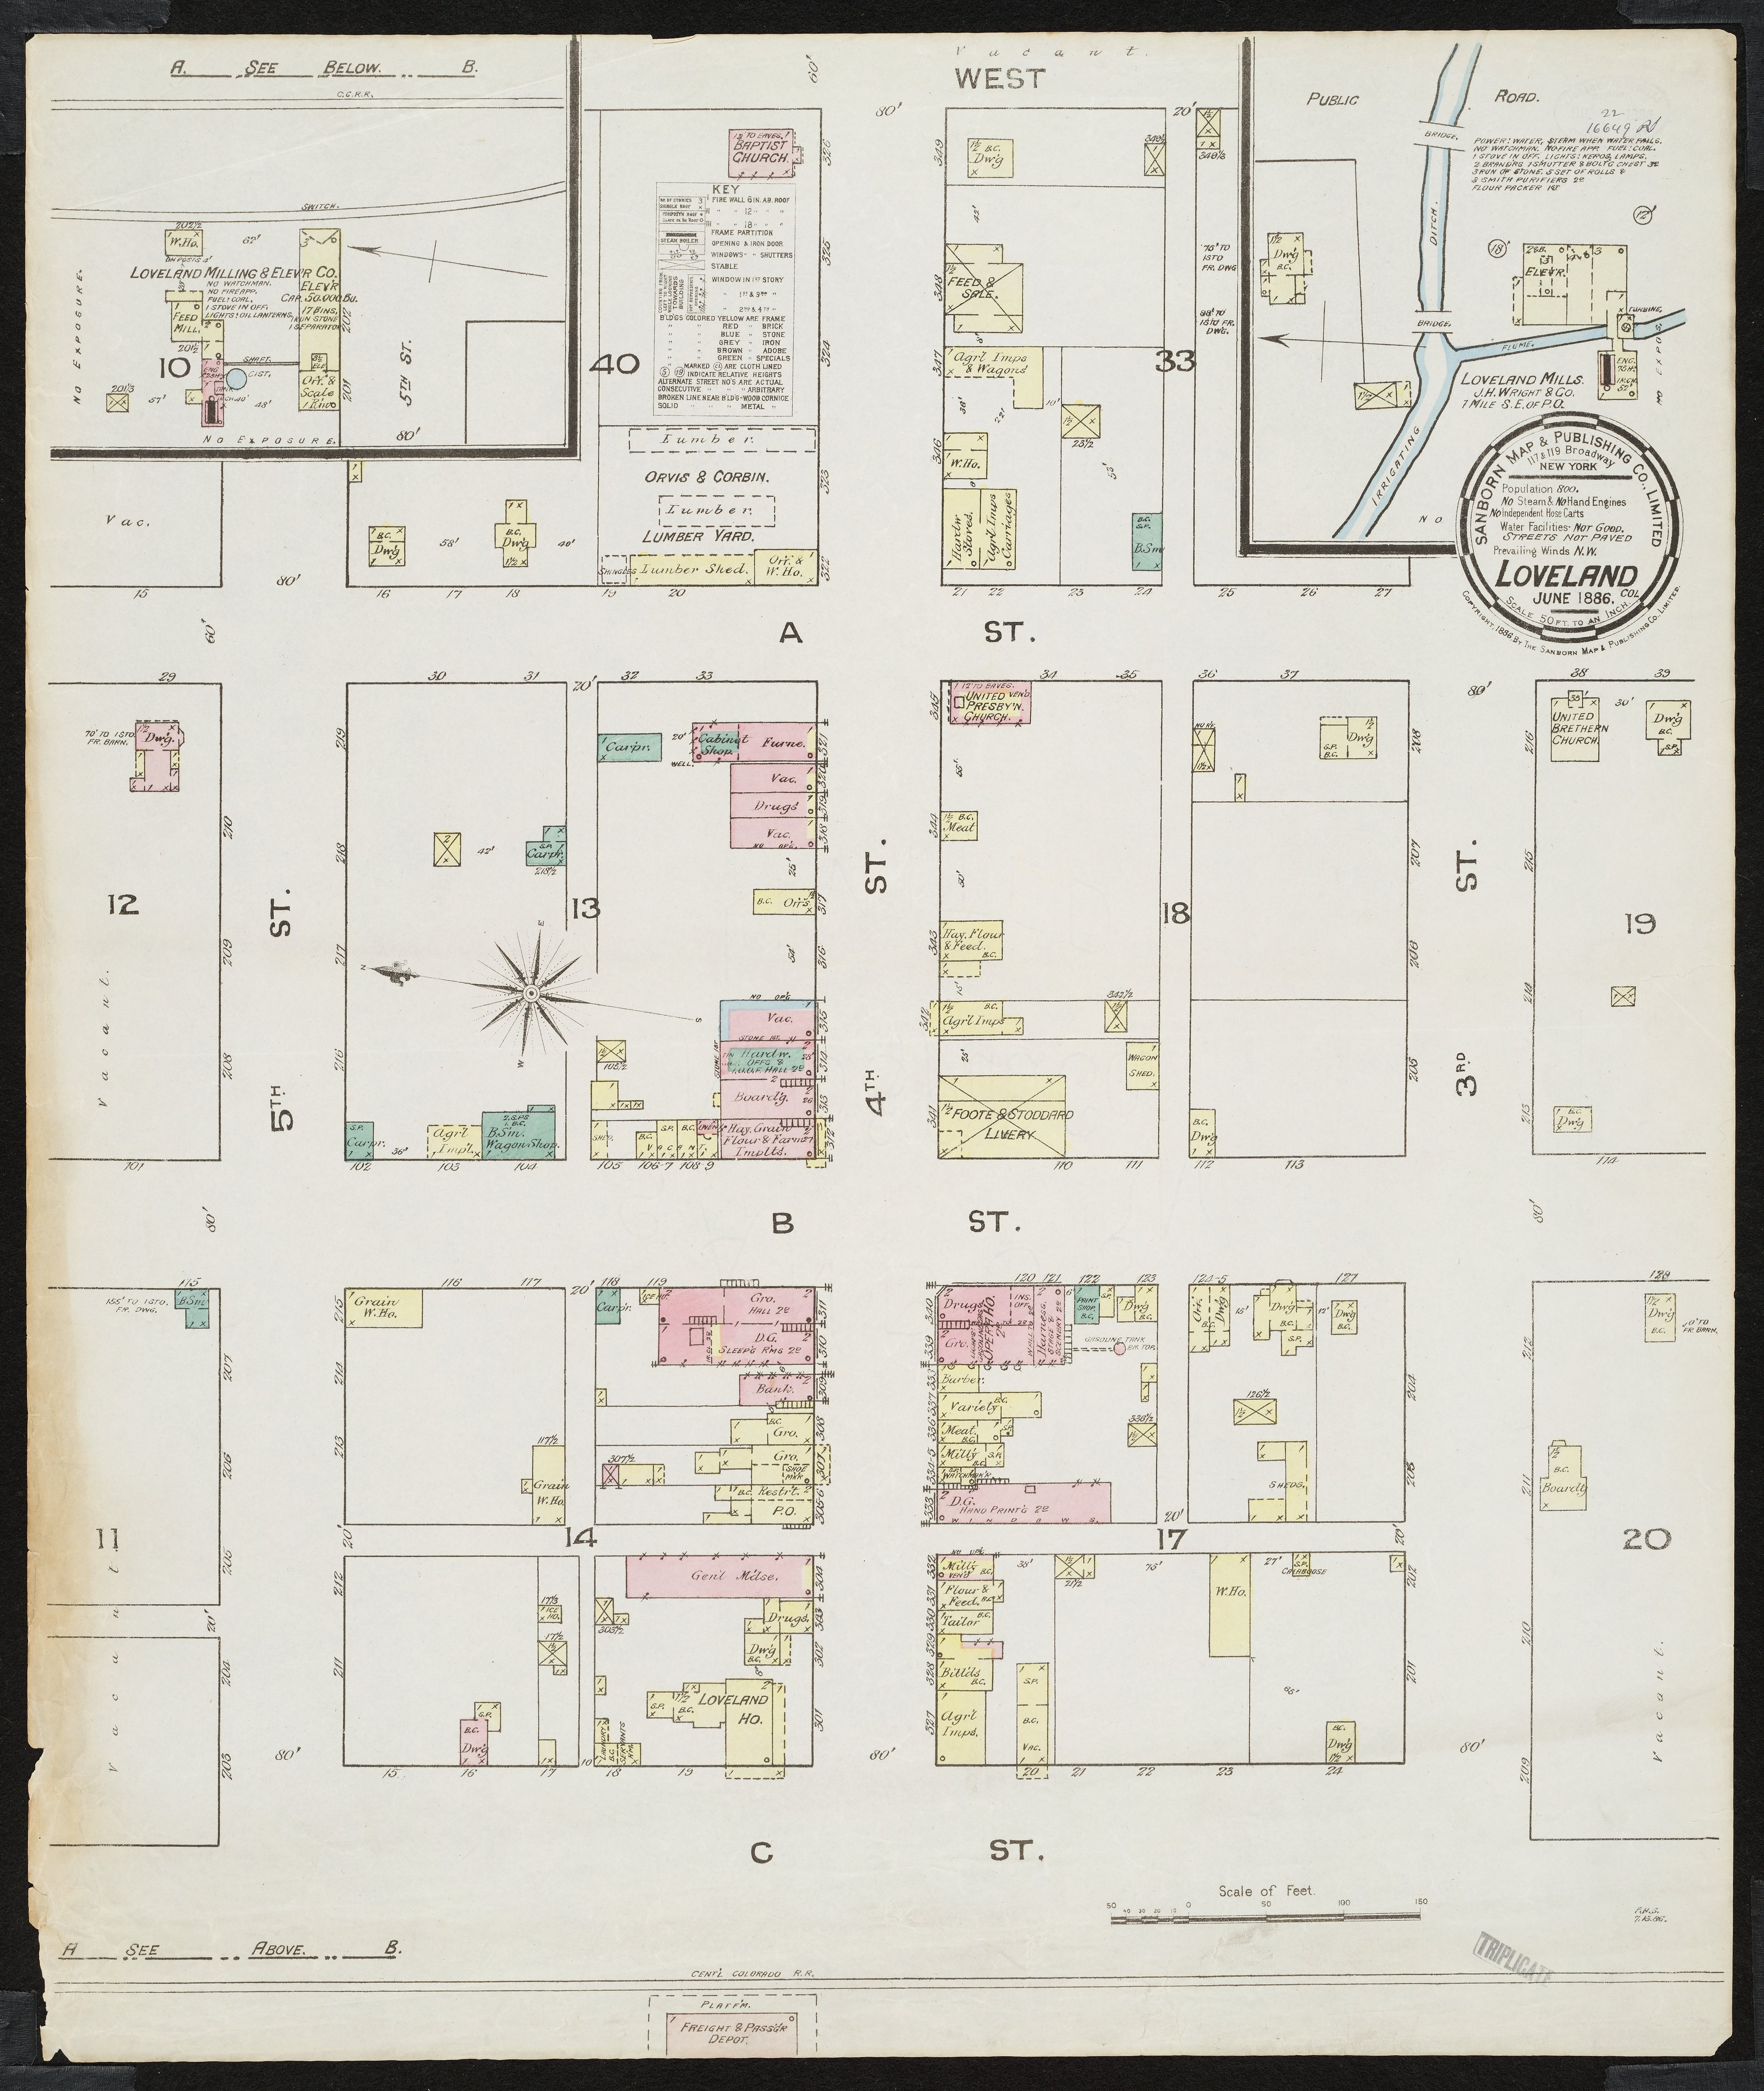 Loveland as seen from the 1886 Sanborn Map - Northern ...